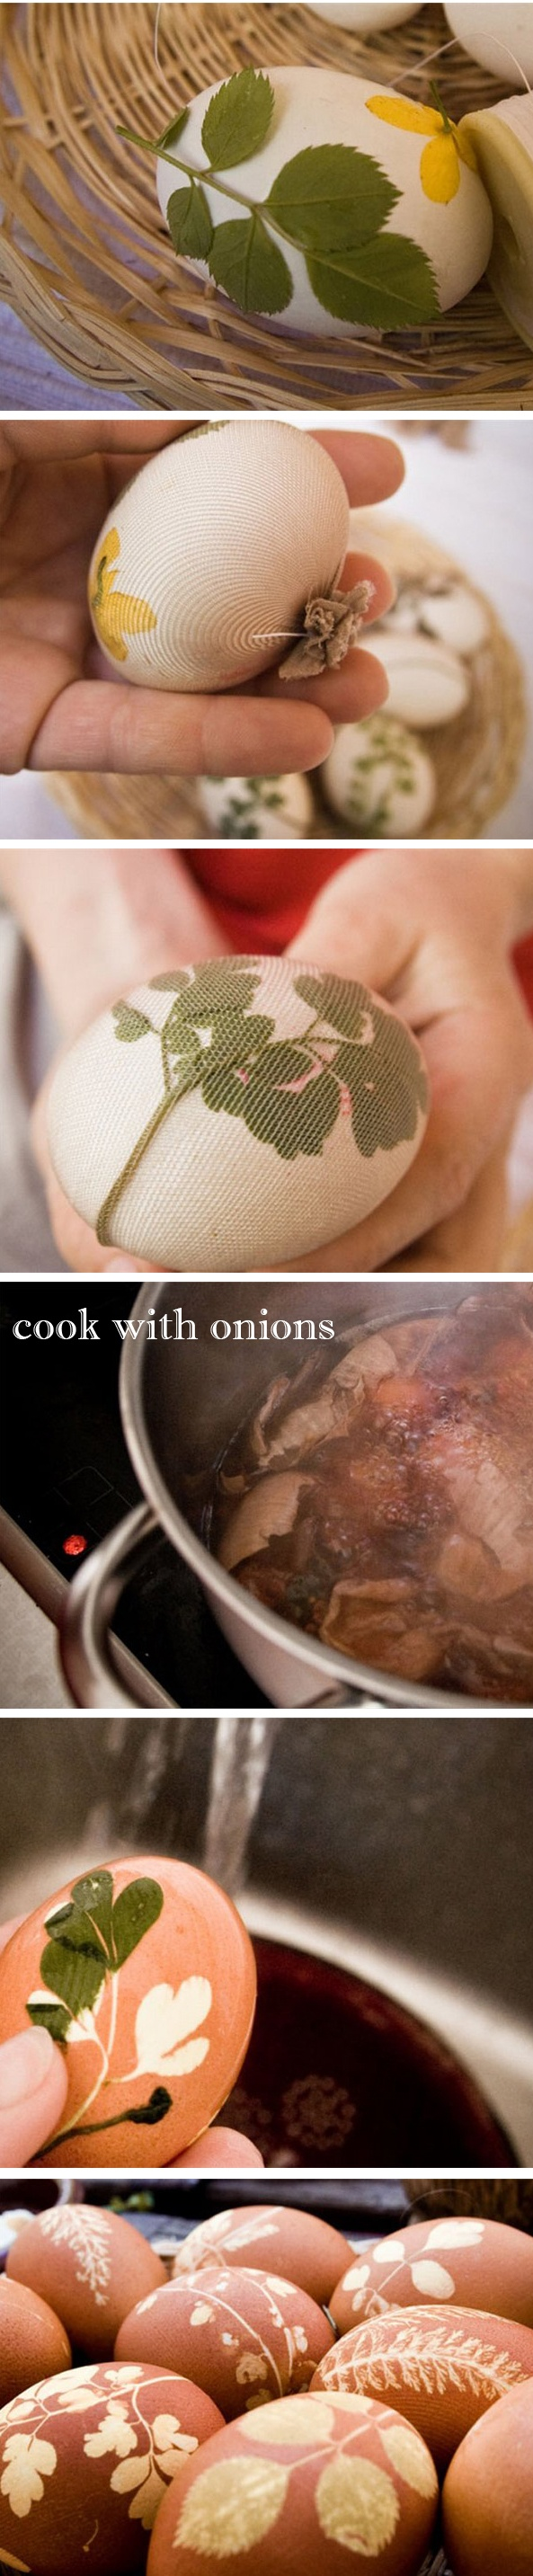 Found this in russian, it took me a while to figure out it were onions. But that should be obvious now :p thank u photoshop ;)